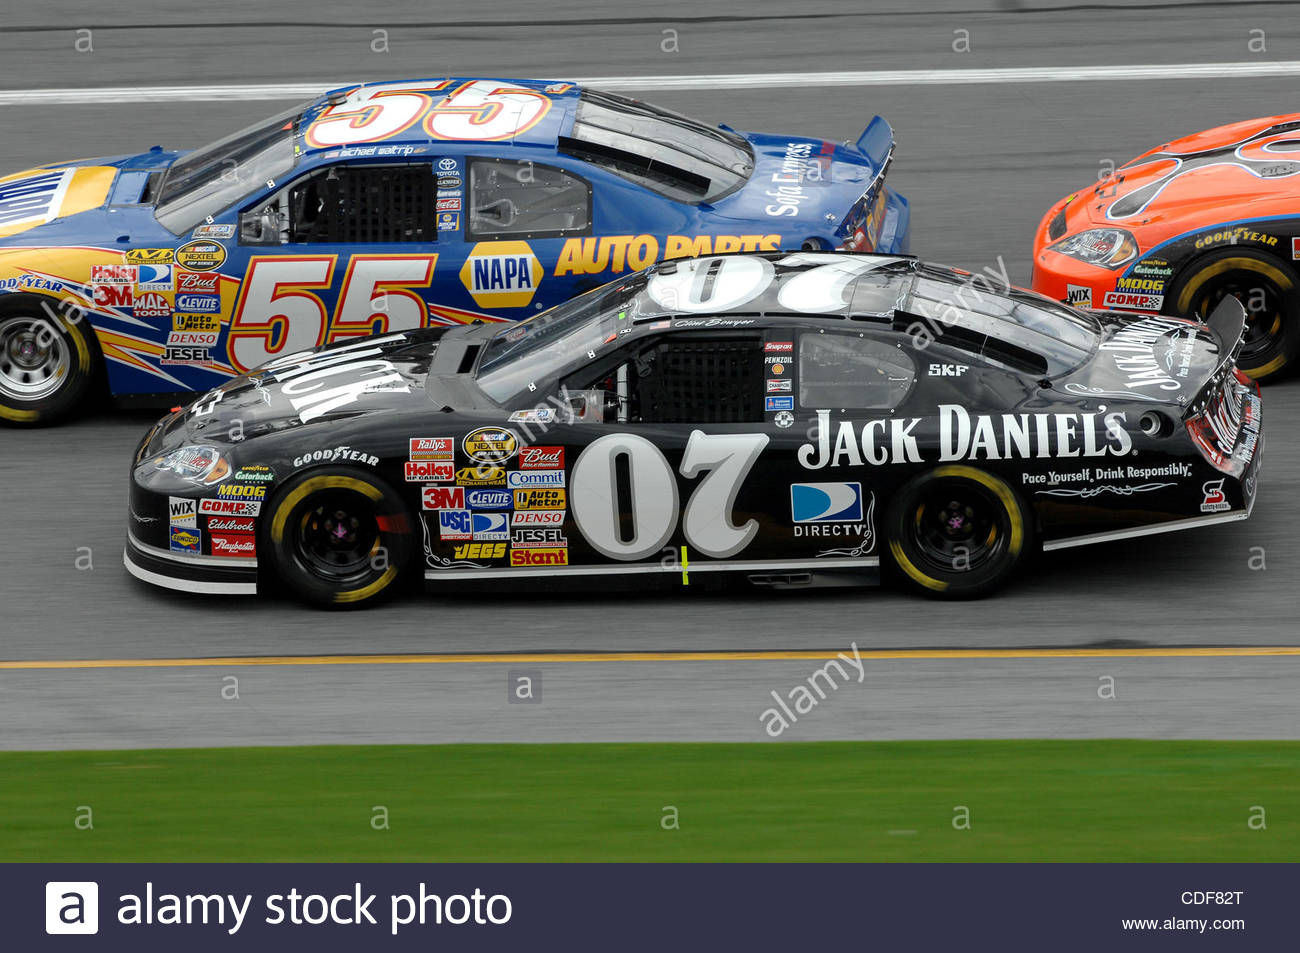 List Of Synonyms And Antonyms Of The Word Nascar Nextel